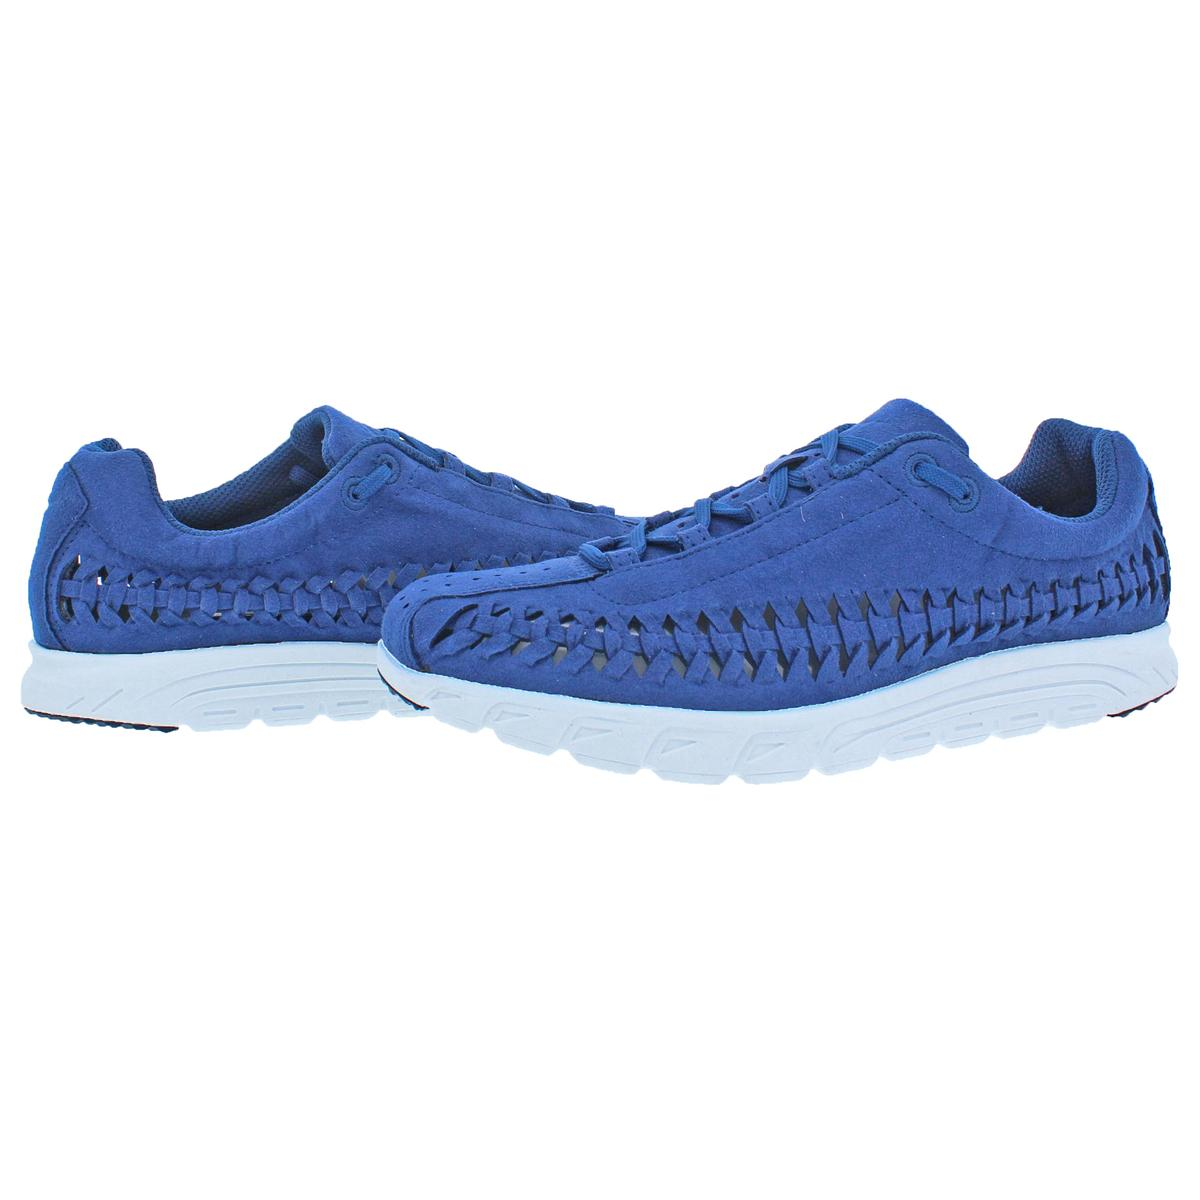 Nike-Mens-Mayfly-Woven-Suede-Woven-Training-Fashion-Sneakers-Shoes-BHFO-2898 thumbnail 9